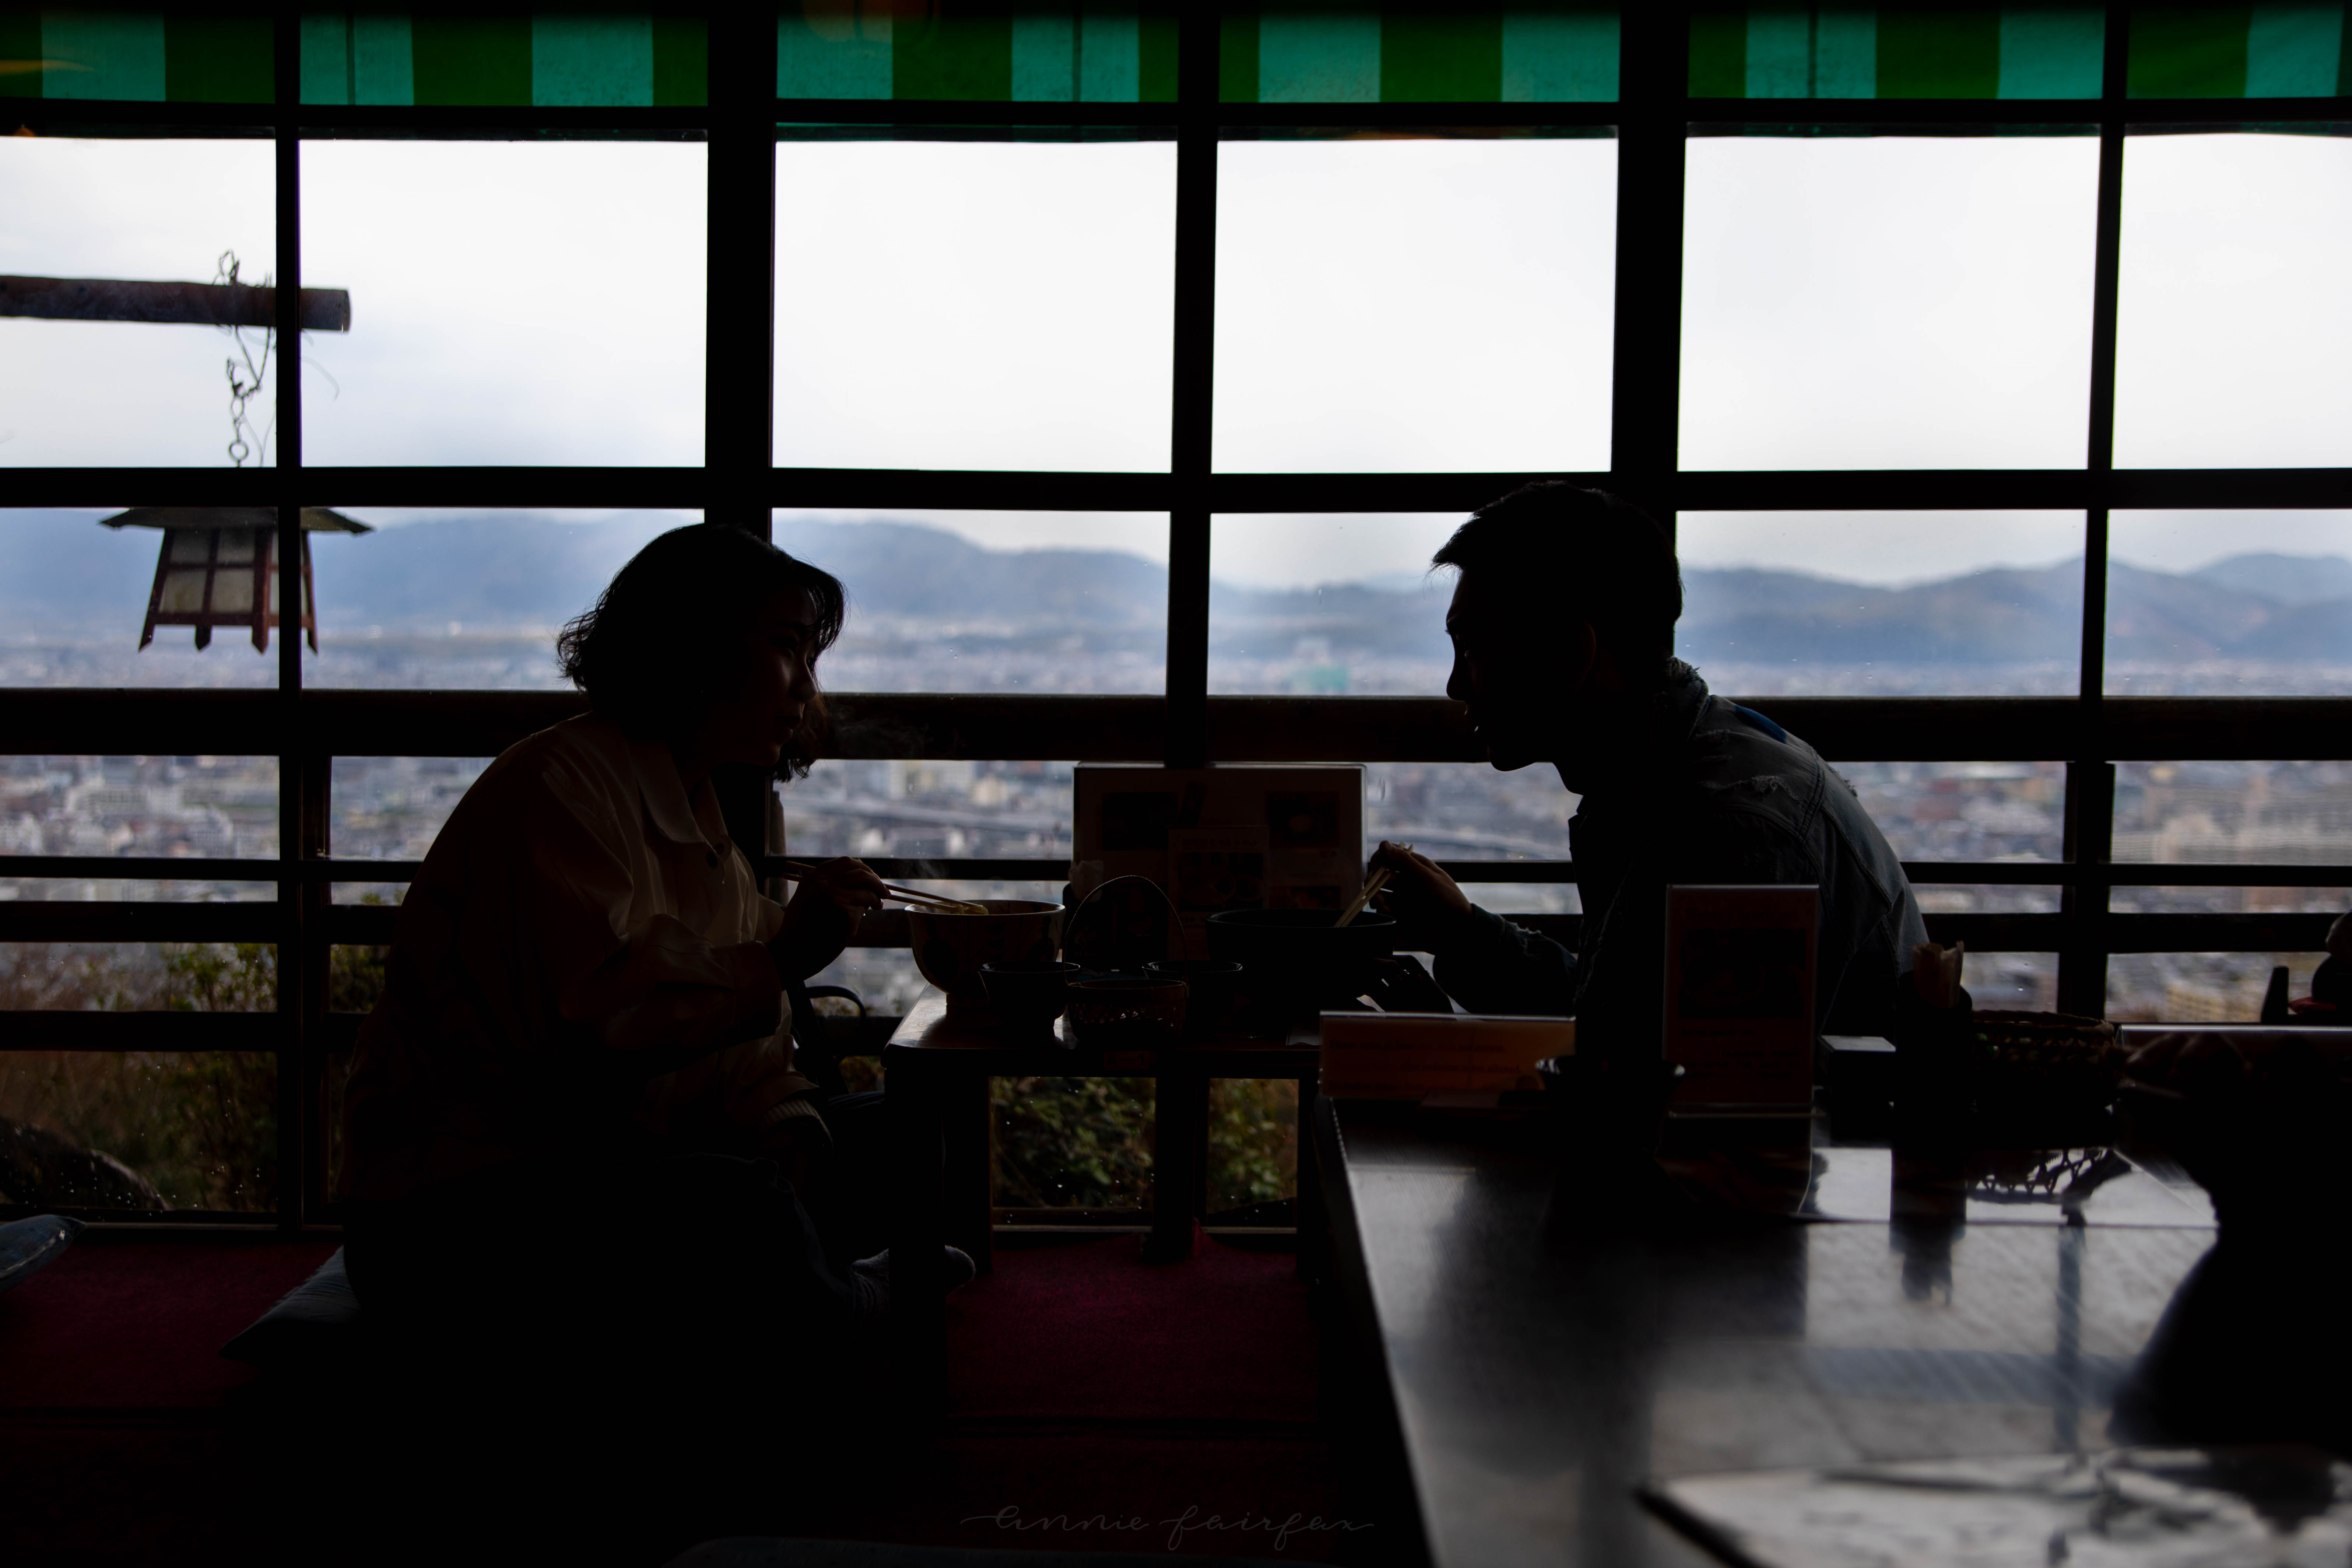 Silhouette of Couple Eating Udon at Fushimi Inari Shrine in Kyoto Japan